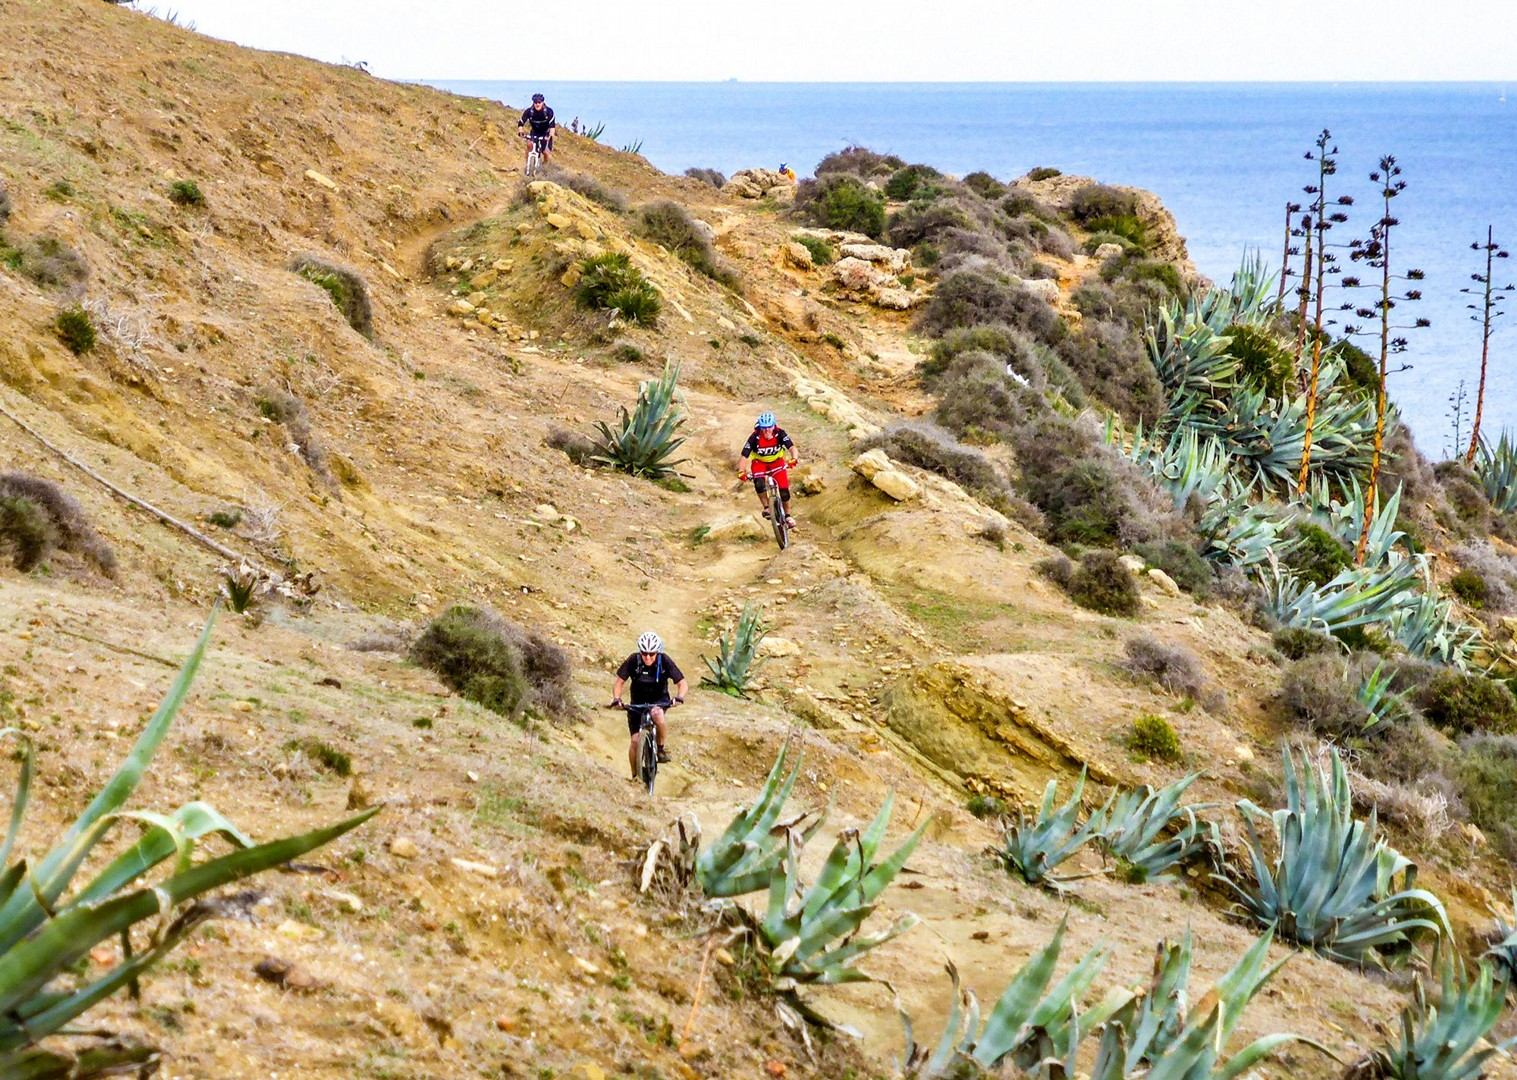 trans-andaluz-mountain-bike-tour-biking-holiday-spain.jpg - Spain - Trans Andaluz - Guided Mountain Bike Holiday - Mountain Biking